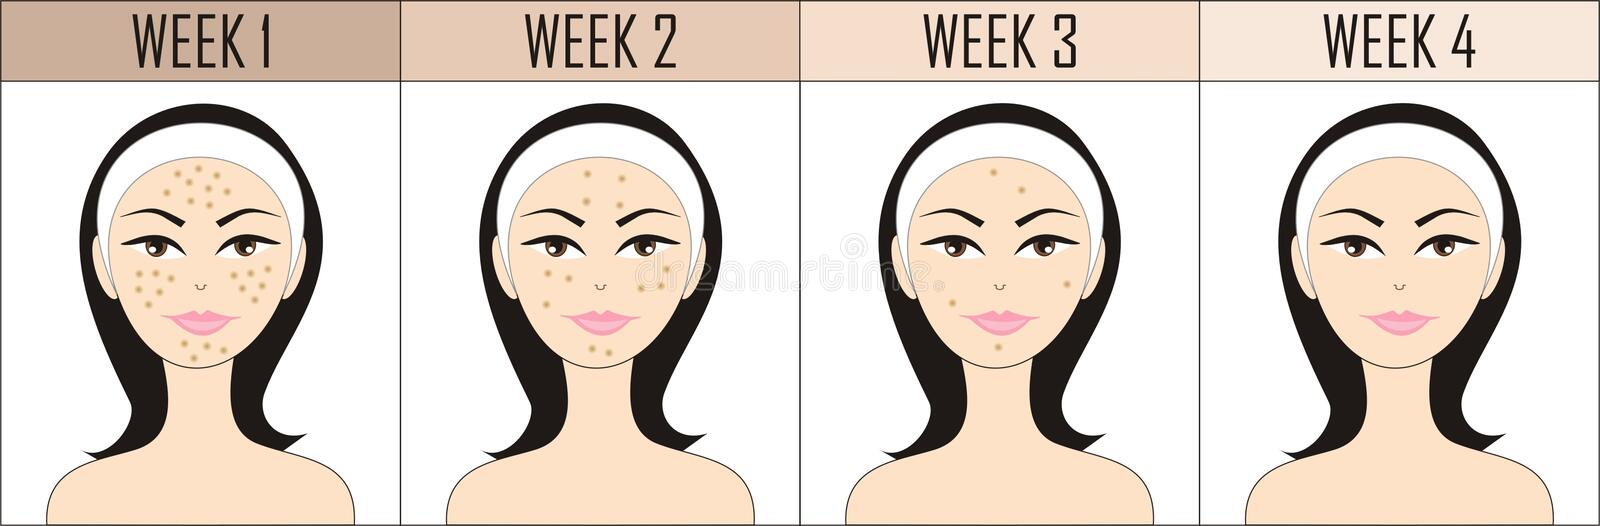 No acne royalty free illustration